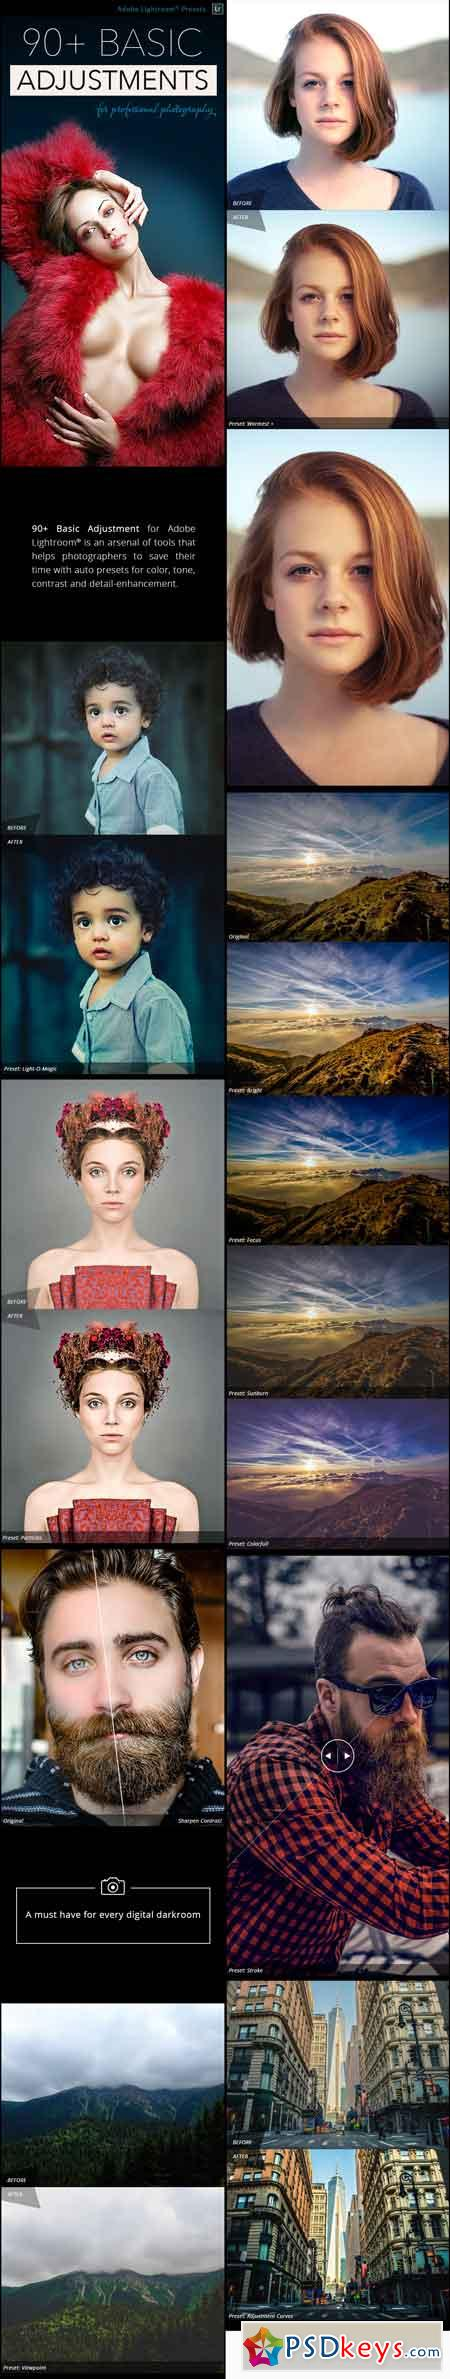 90 Basic Adjustment - Professional Adobe Lightroom Presets 18316189